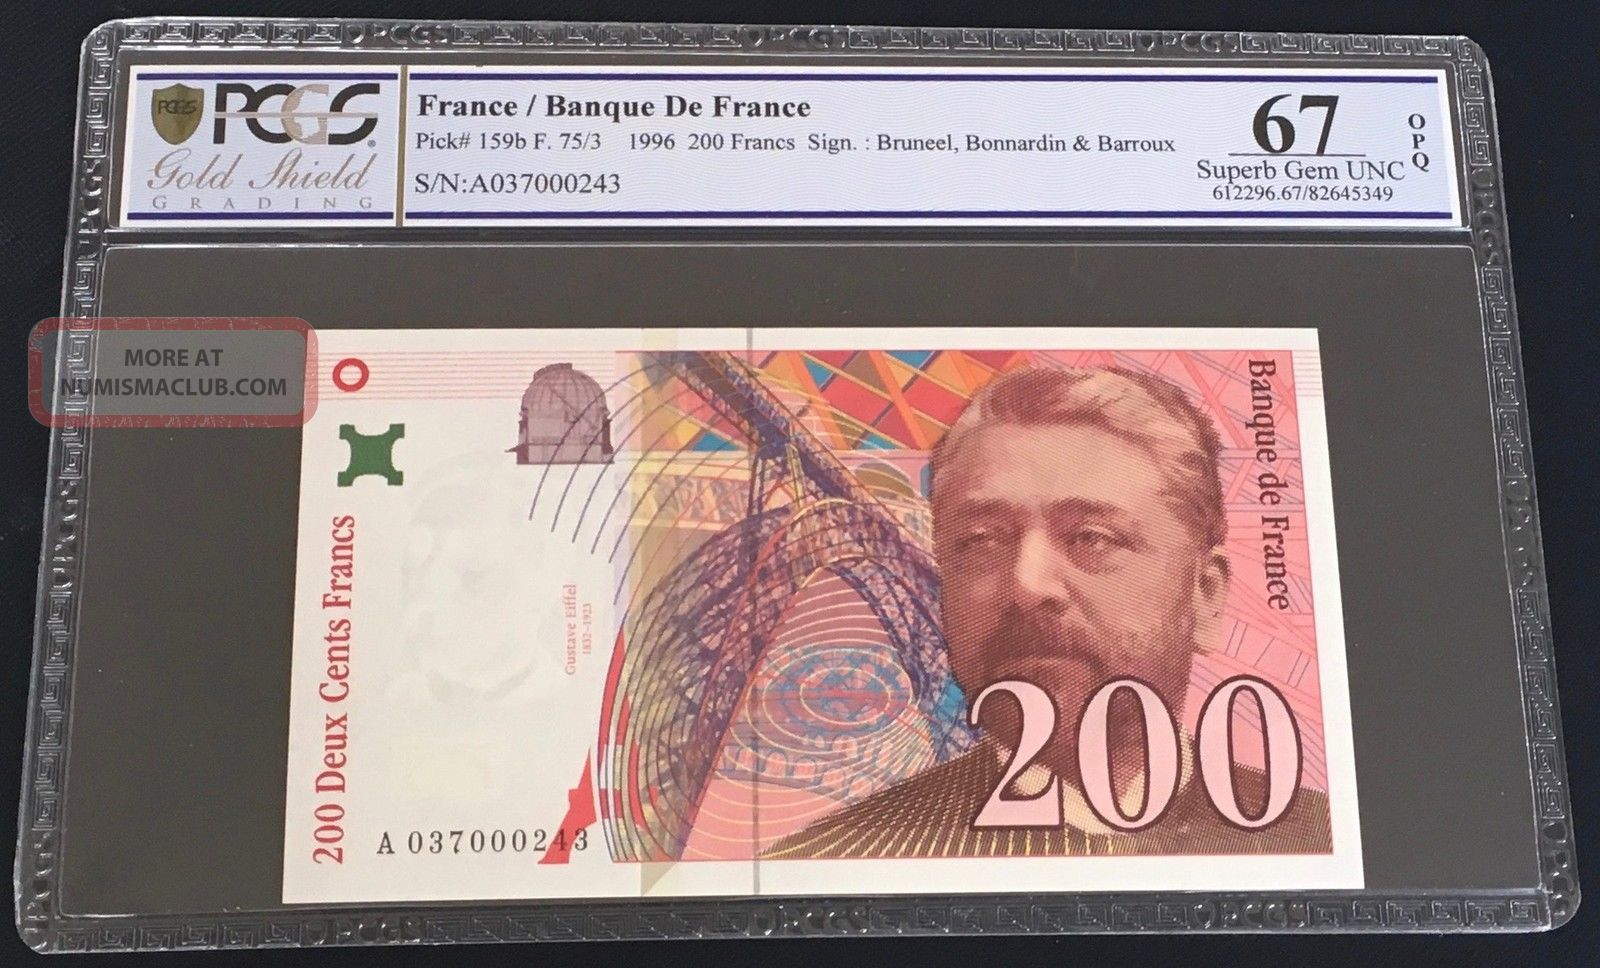 200 Francs - Grade 67 - 1996 - Pick 159 - Serial N°243 Europe photo